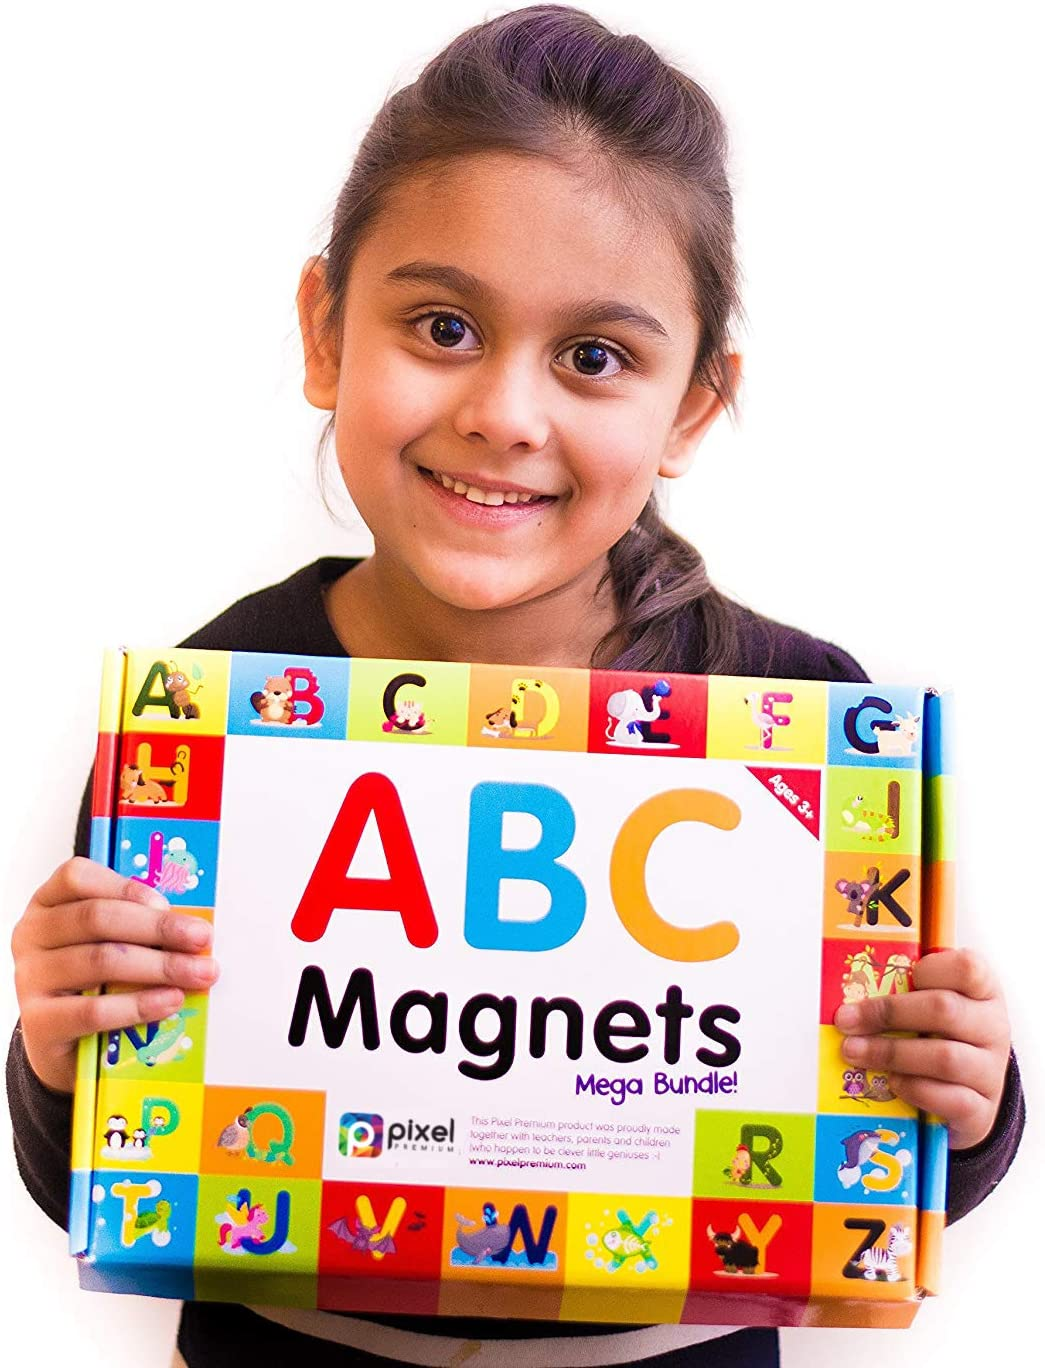 Pixel Premium ABC Magnets for Kids Gift Set - 142 Magnetic Letters for Fridge, Dry Erase Magnetic Board and FREE e-Book with 40+ Learning & Spelling Games - Best Alphabet Magnets for Refrigerator Fun!: Furniture & Decor